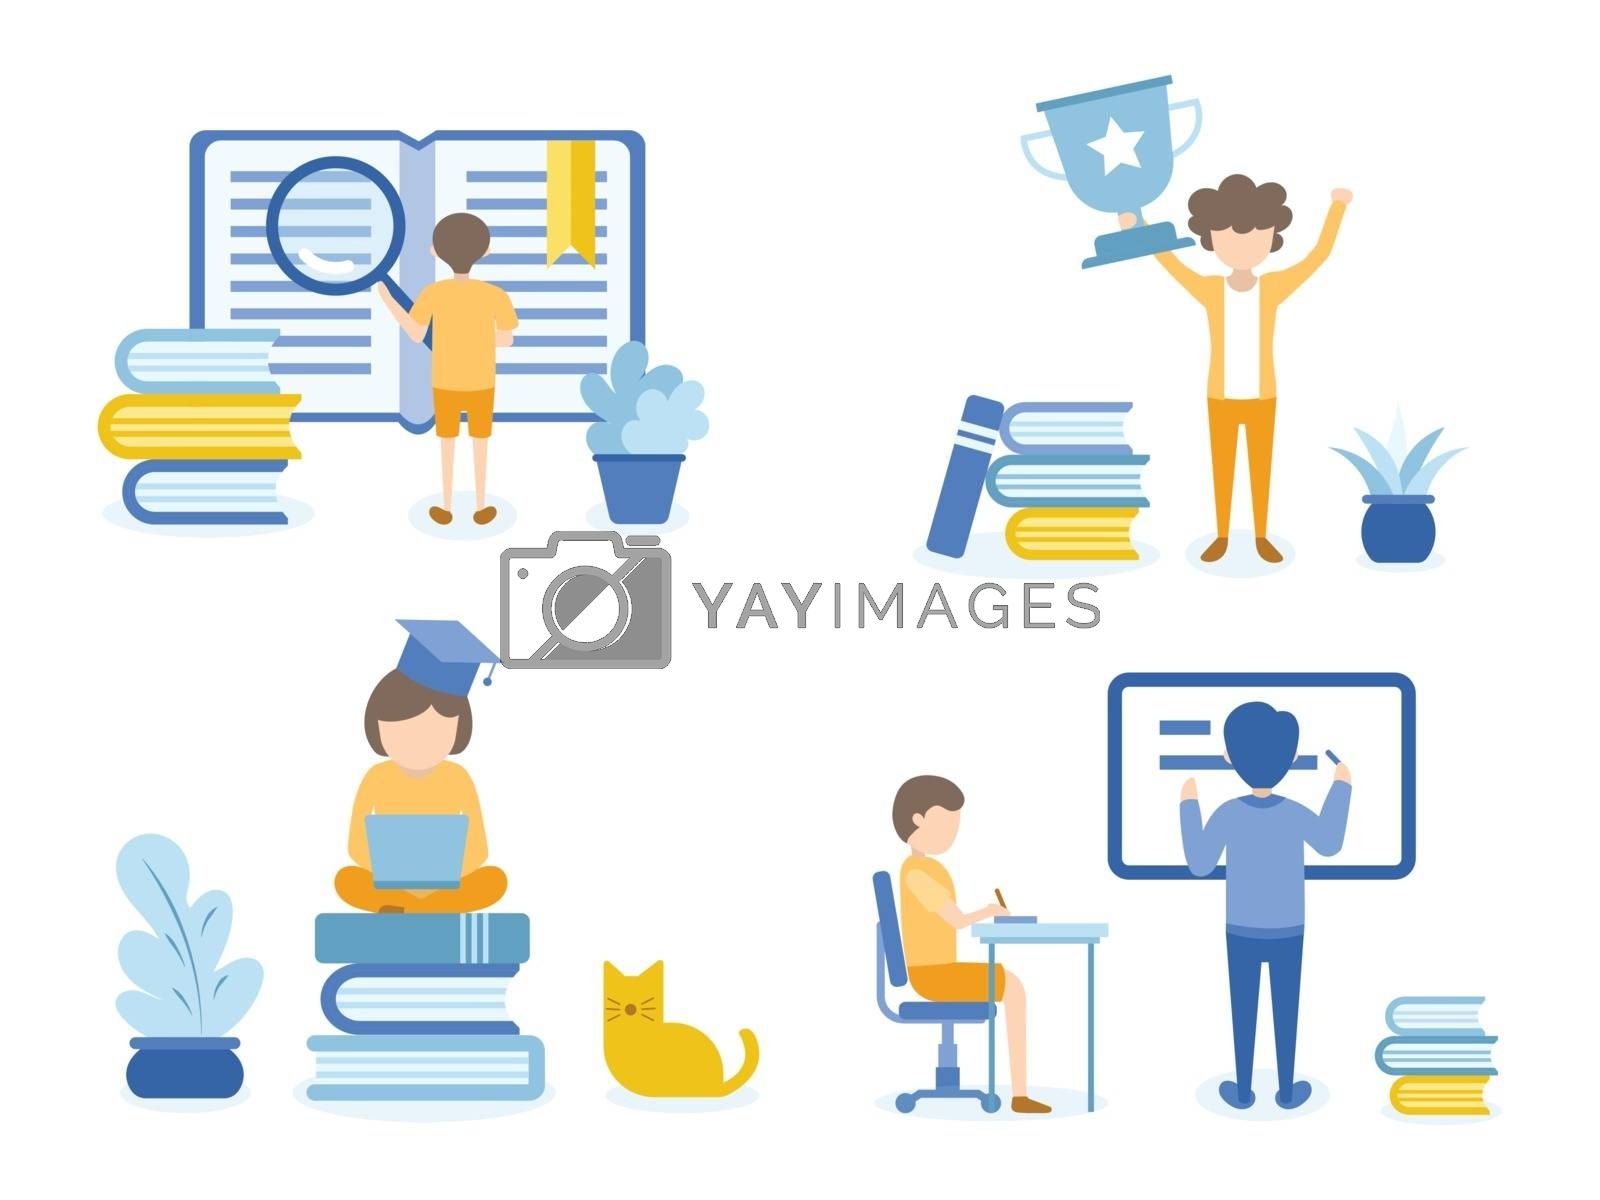 Boy searching in a book for his homework. Women happy with Trophy. Concept Illustration of education for training, studying, e-learning, and online course.